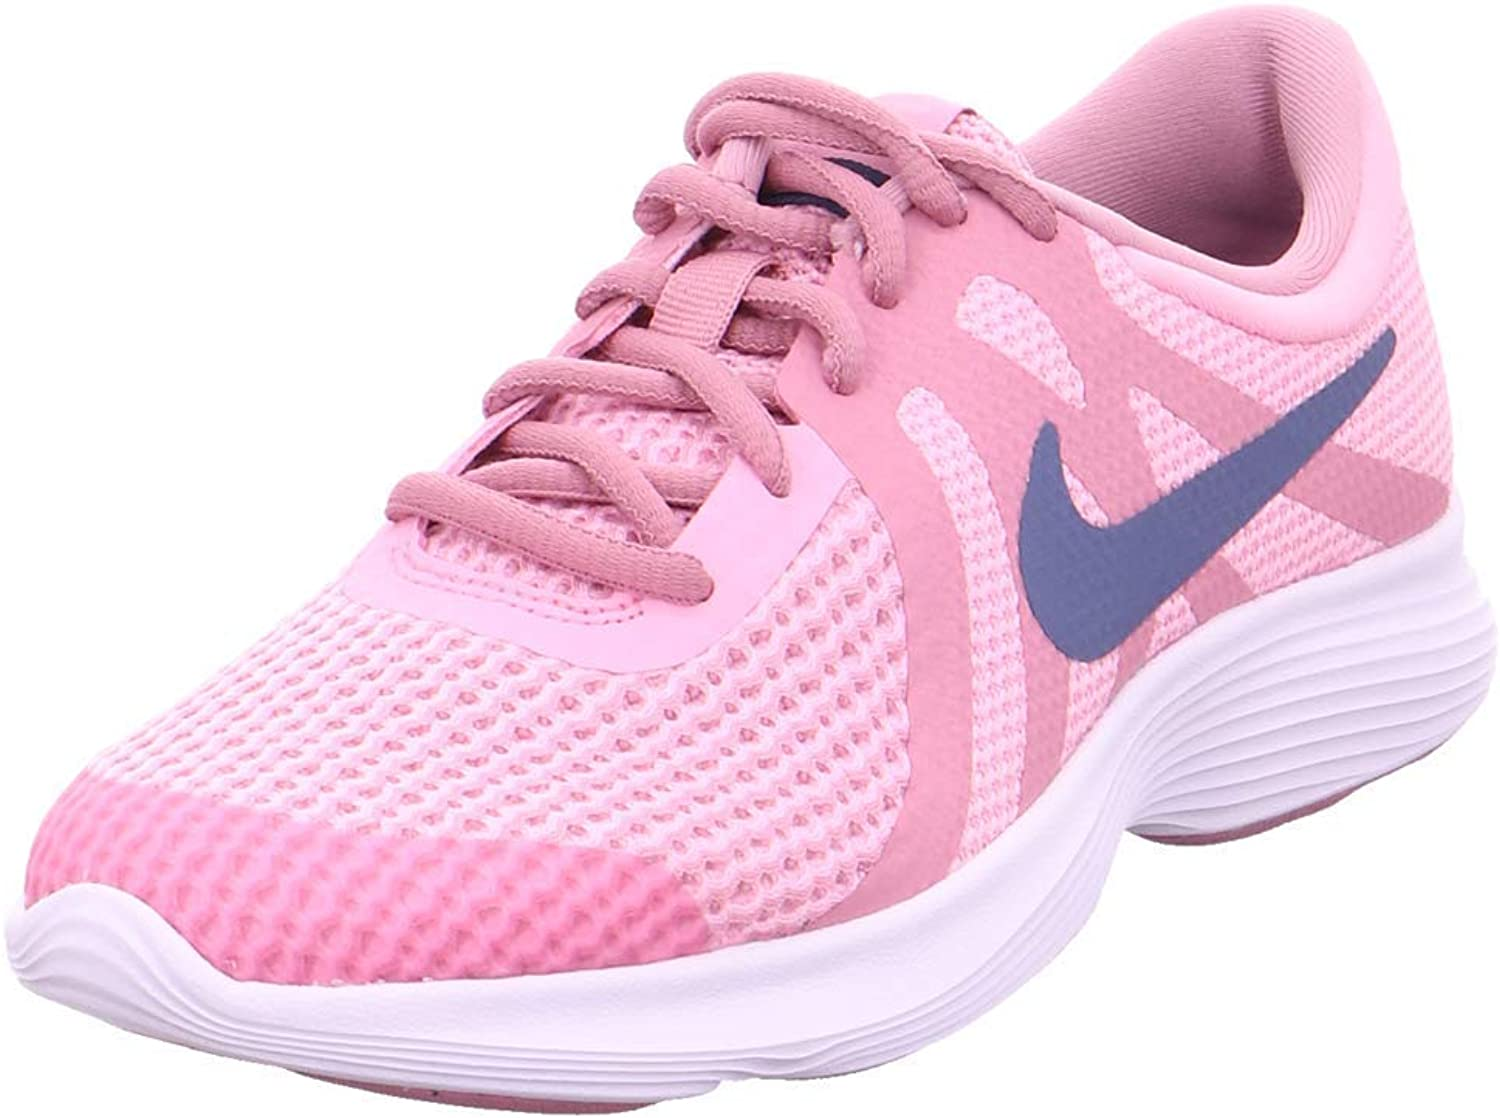 Nike Revolution 4 (GS), Zapatillas de Running para Niñas, Rosa (Pink/Diffused Blue-Elemental Pink-White 602), 40 EU: Amazon.es: Zapatos y complementos